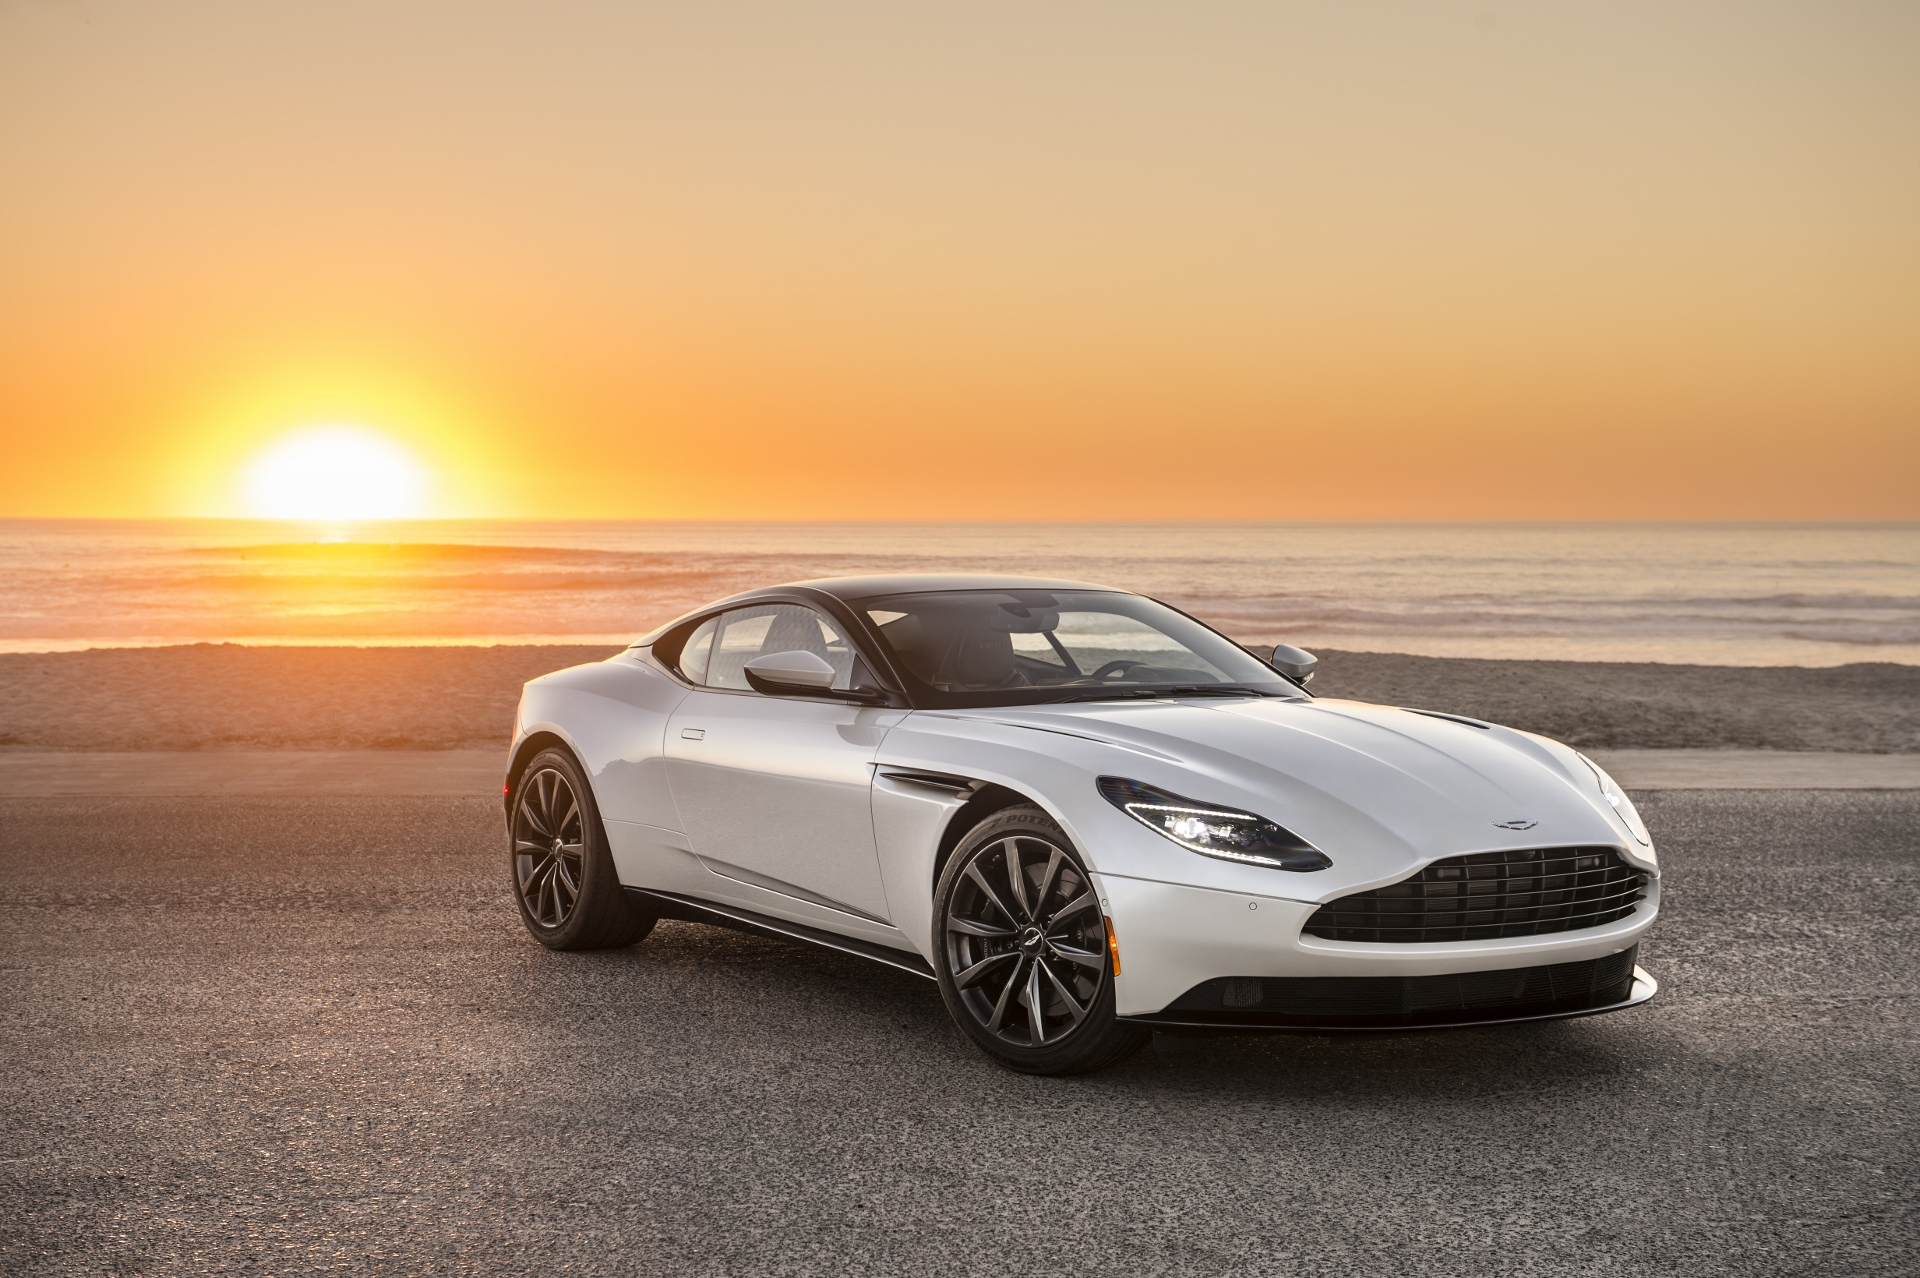 2018 Aston Martin Db11 V8 First Drive Review With A Little Help